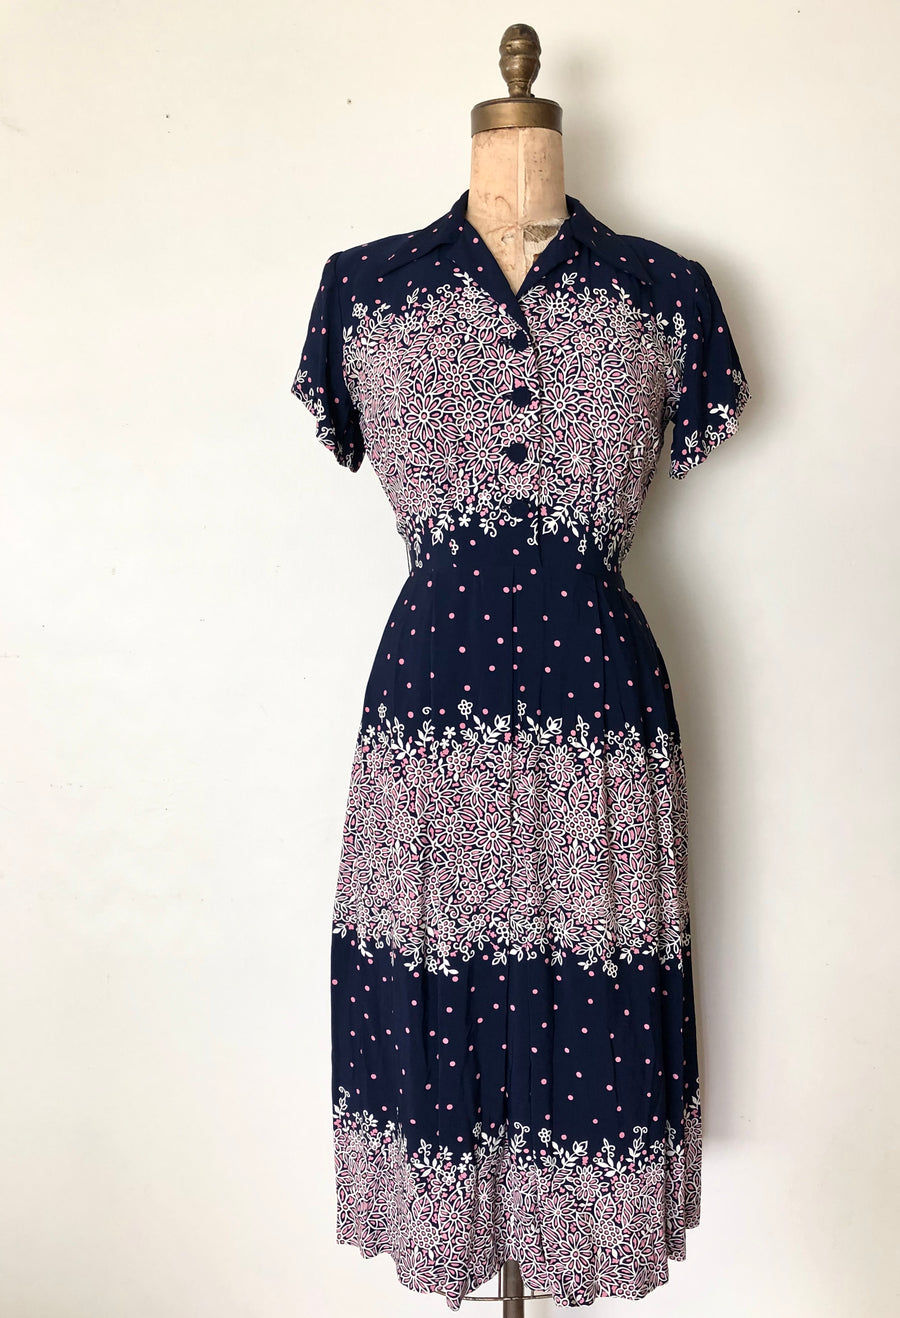 1940's Rayon Floral Dress - 40's Navy & Pink Dress - Size M